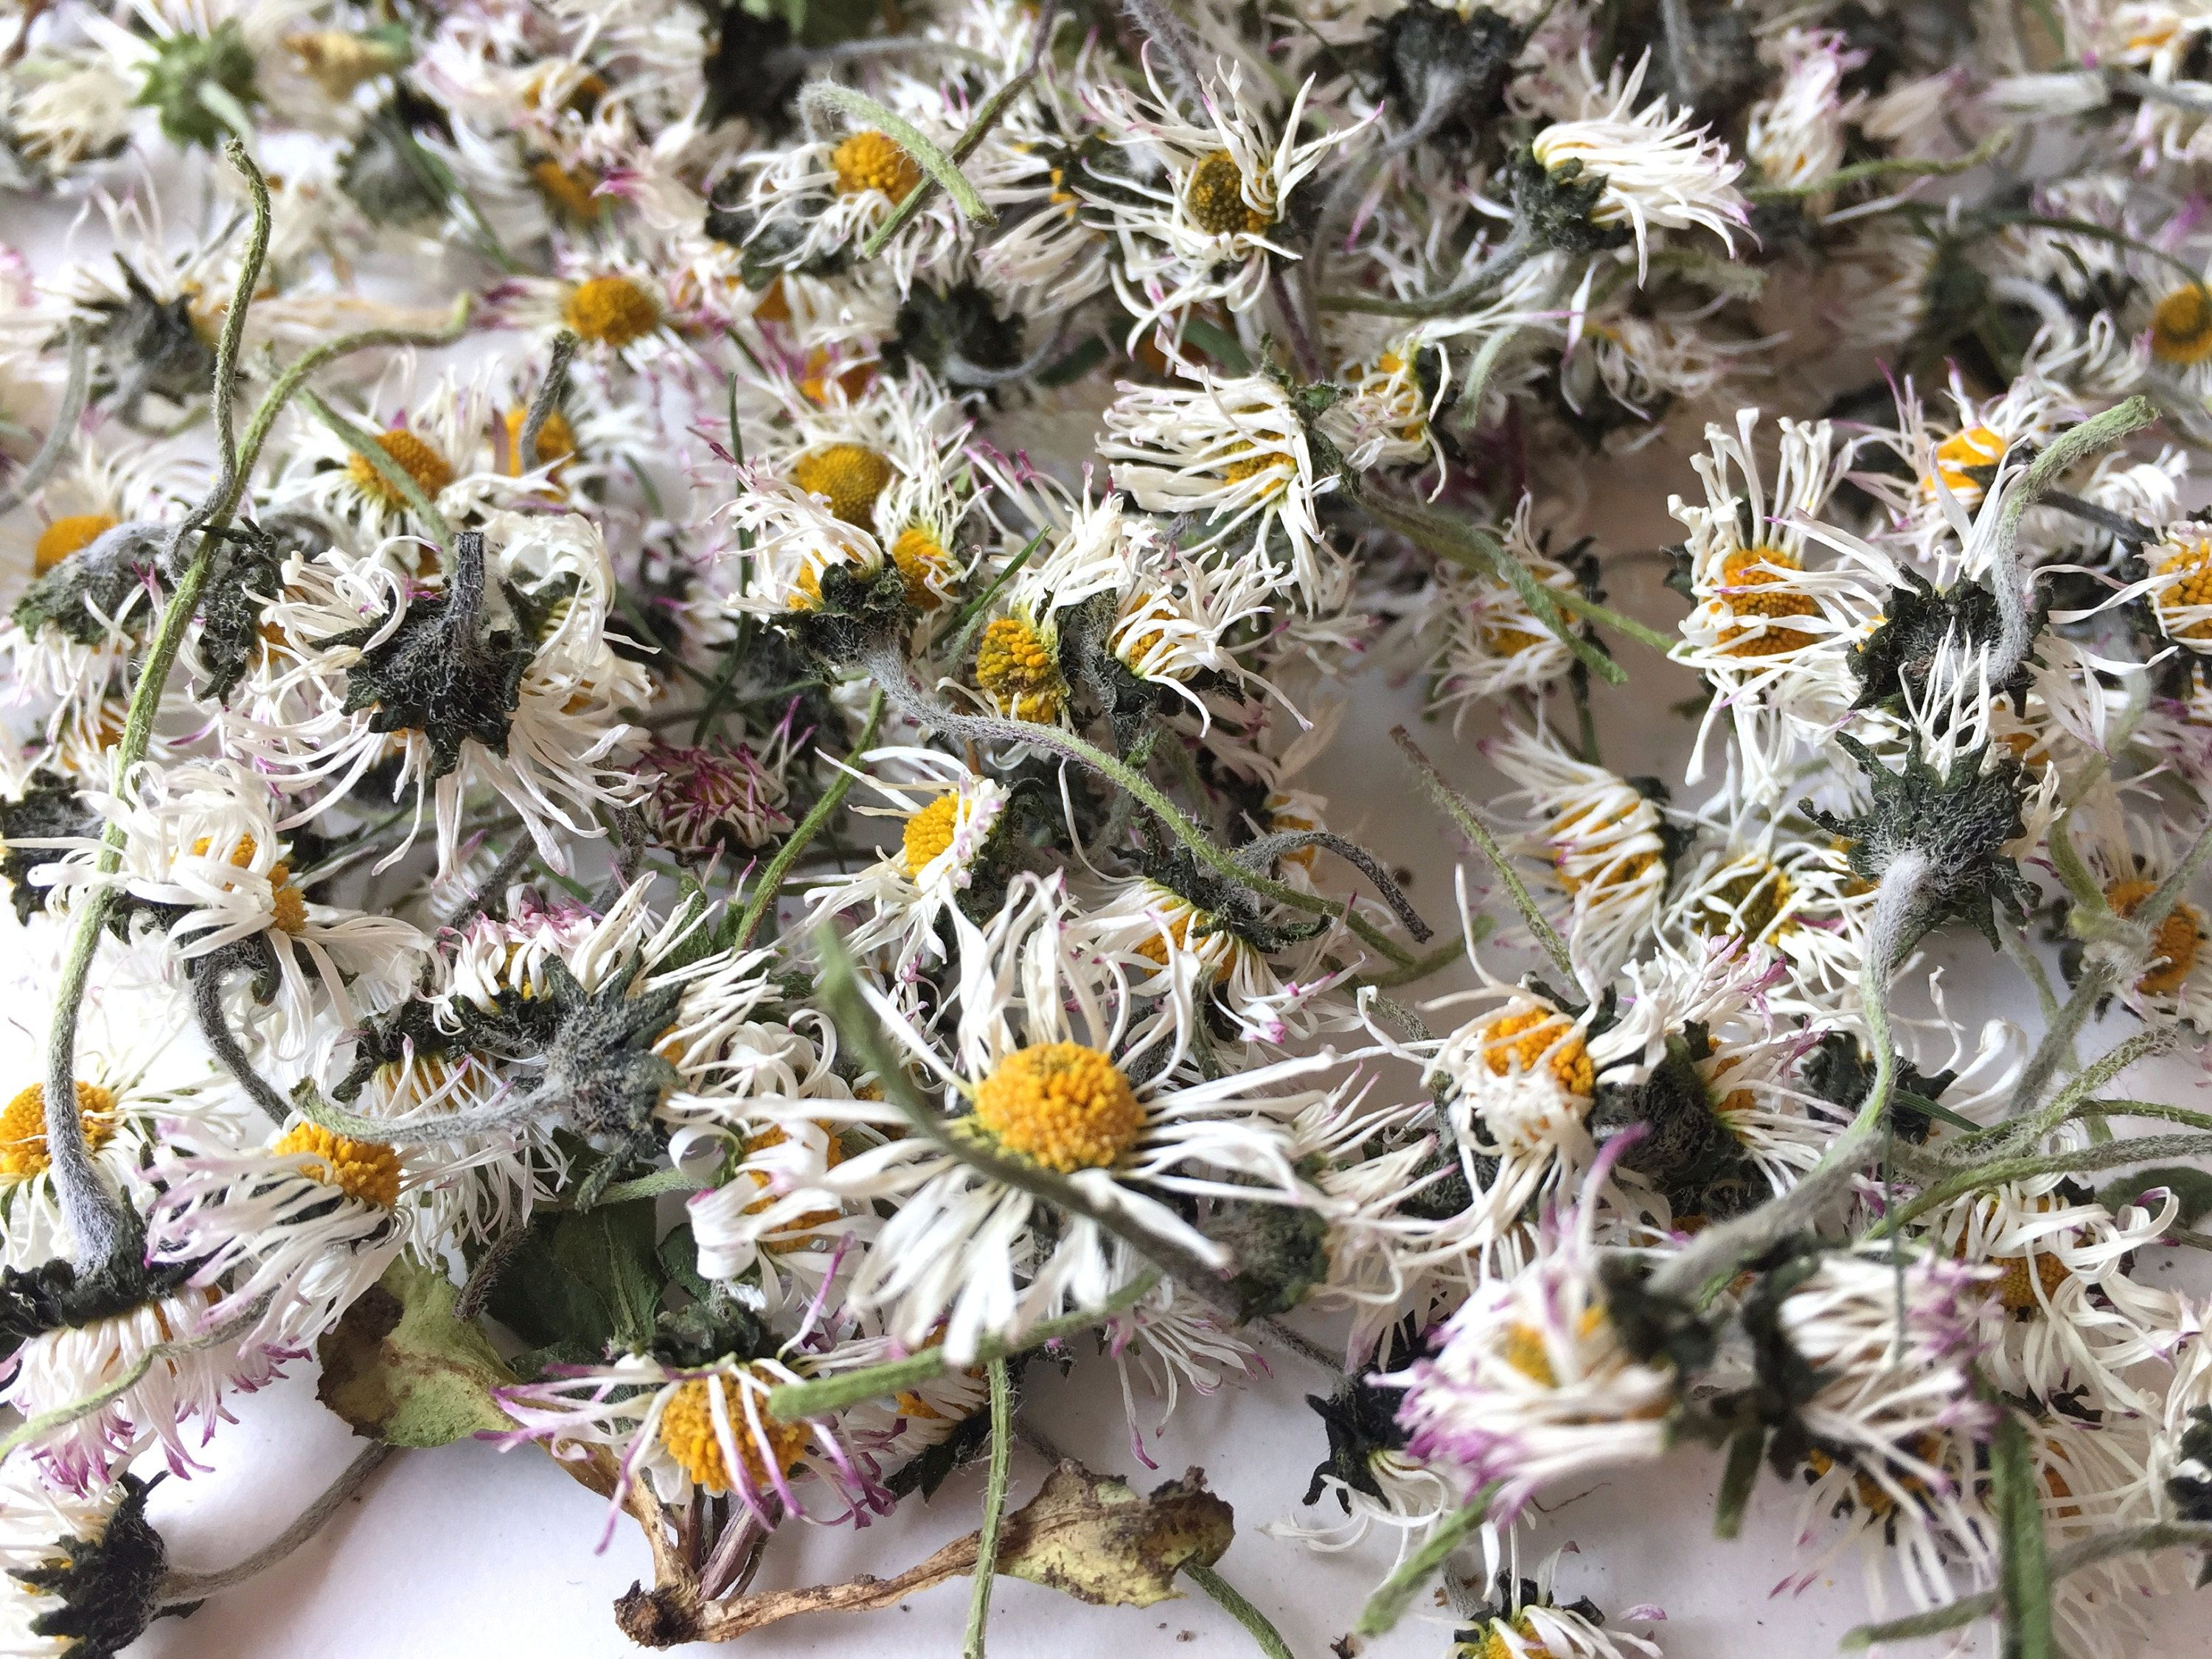 8 Grams Of Natural Dried Daisy Flowers Over 300 Flower Heads